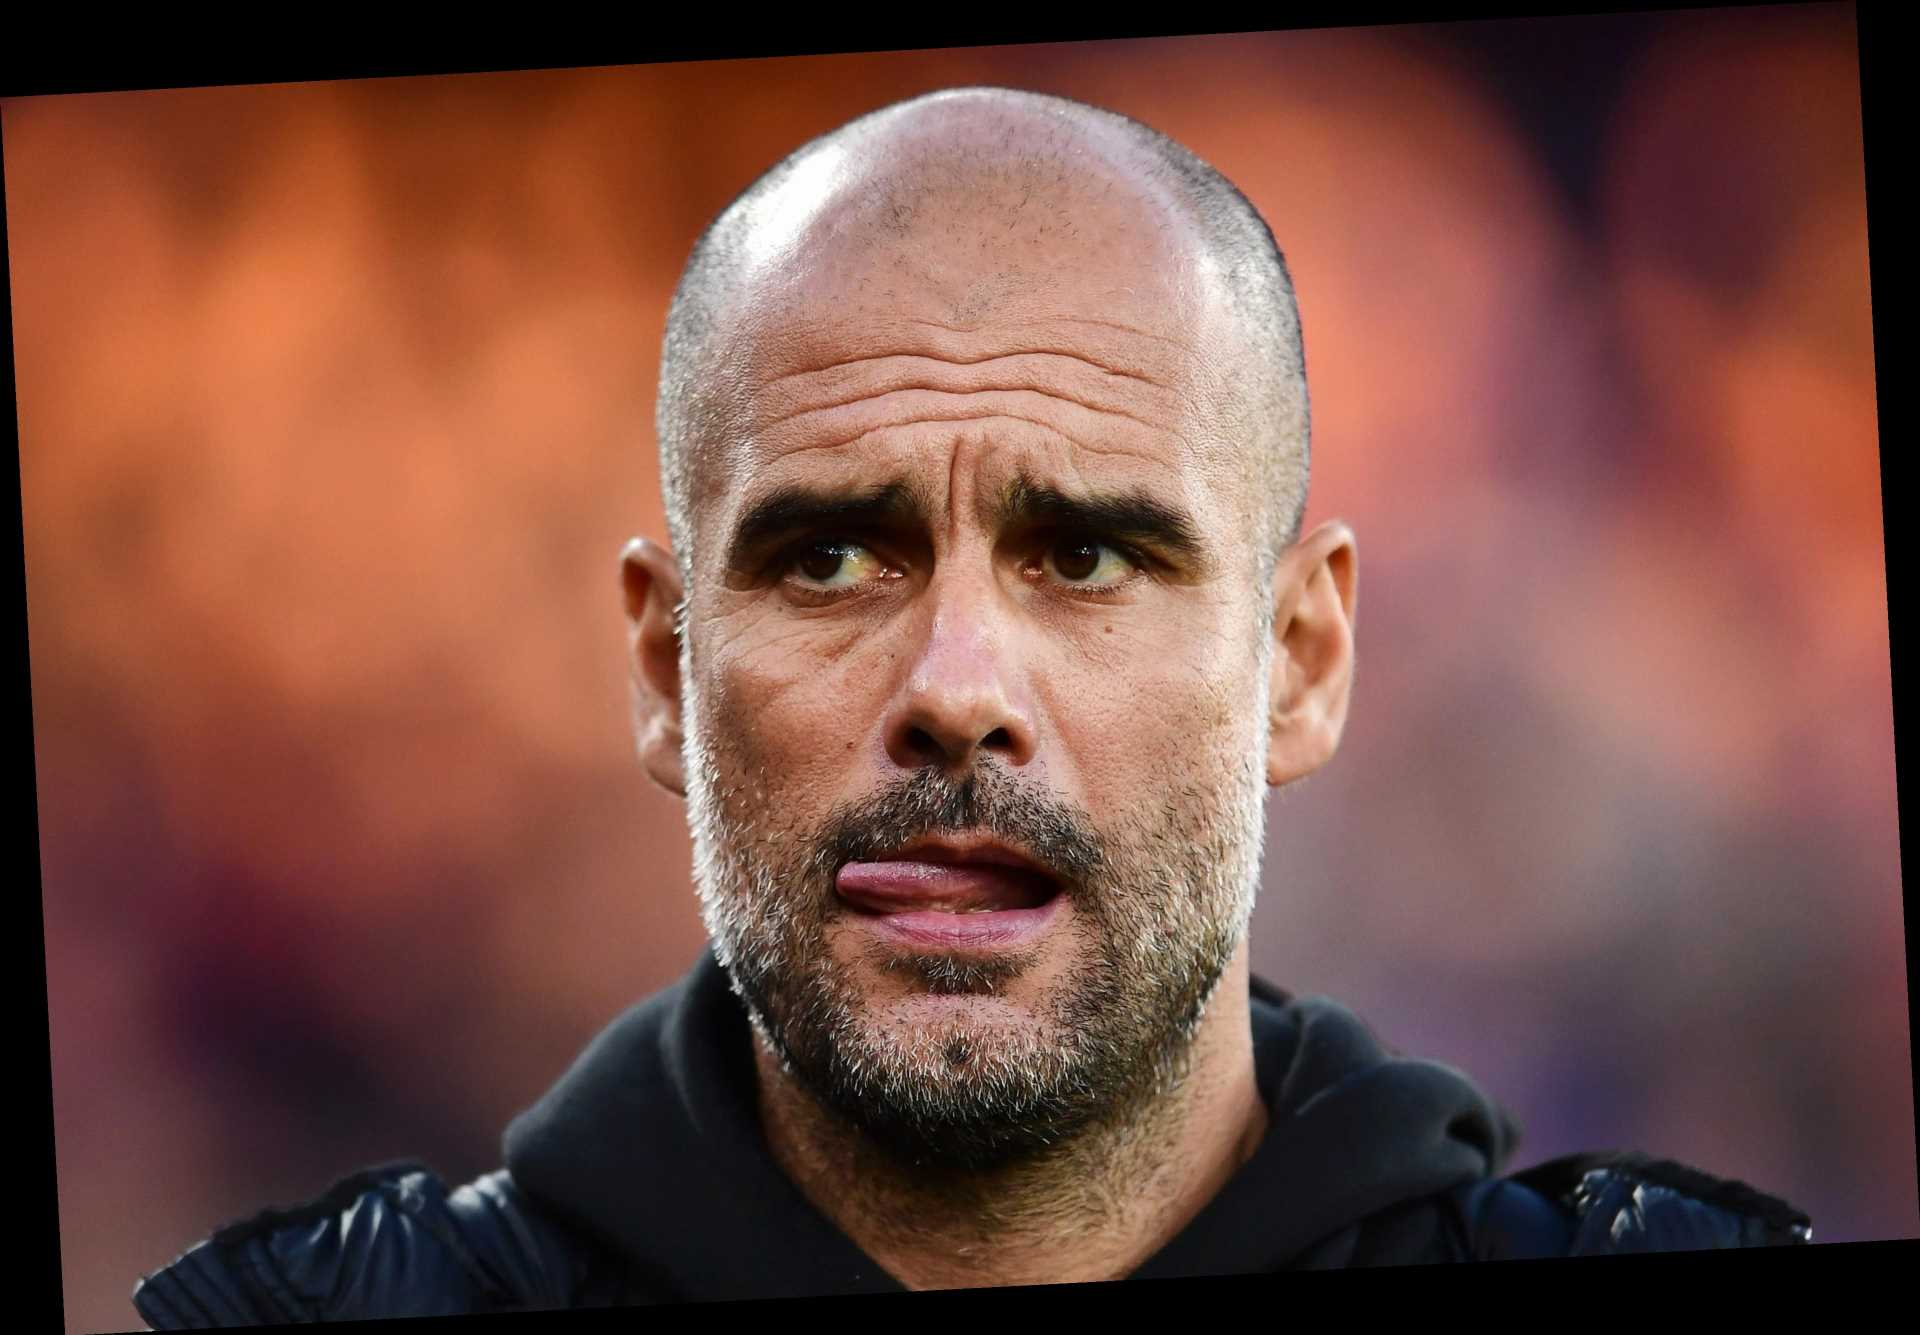 Pep Guardiola not included in five-man shortlist for Coach of the Year… despite leading Man City to historic TREBLE – The Sun